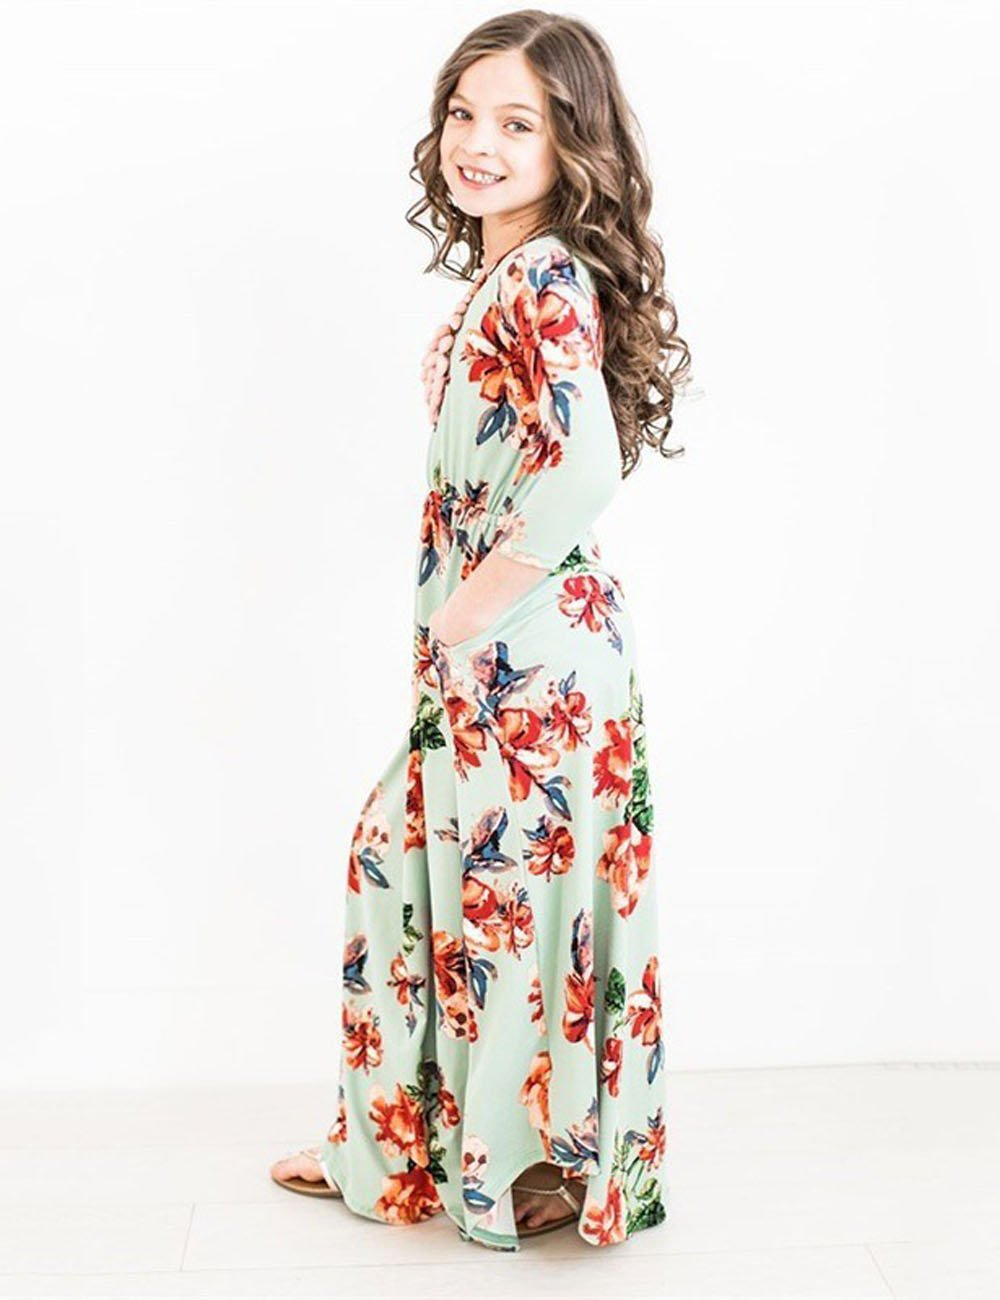 JYH Girls Maxi Dress, Floral Flared Sewing Pocket Three-Quarter Sleeves Long Dress Size 5-12 by JYH (Image #2)